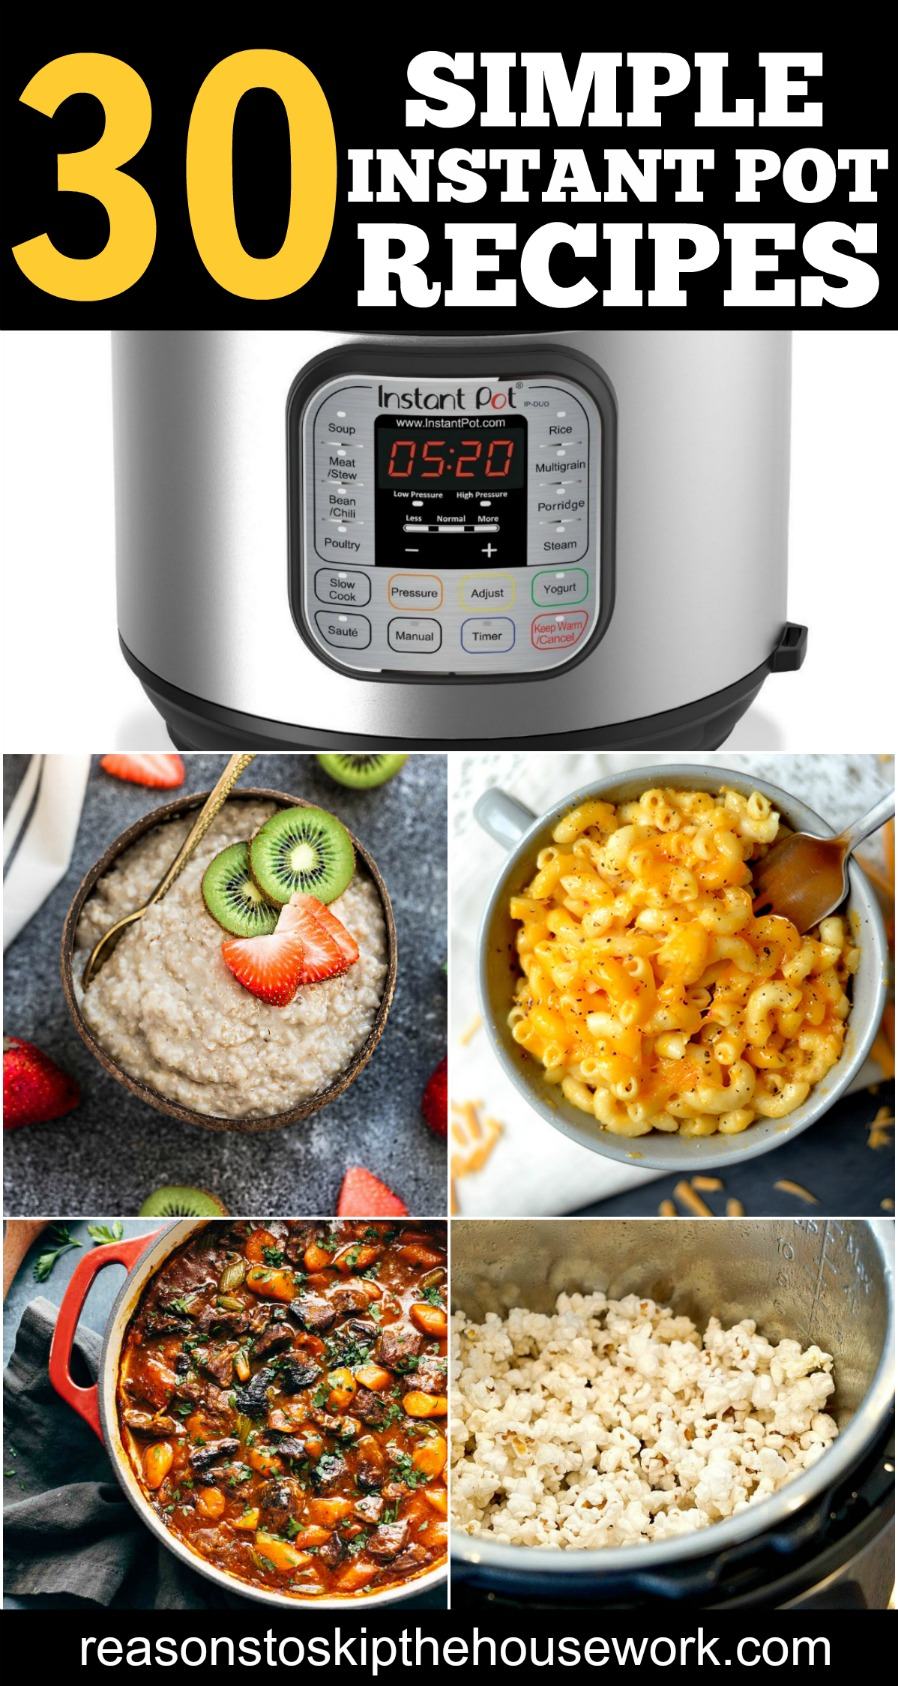 Instant Pot Recipes are the perfect solution for weeknight meals. If you don't own an Instant Pot yet, you truly are missing out!